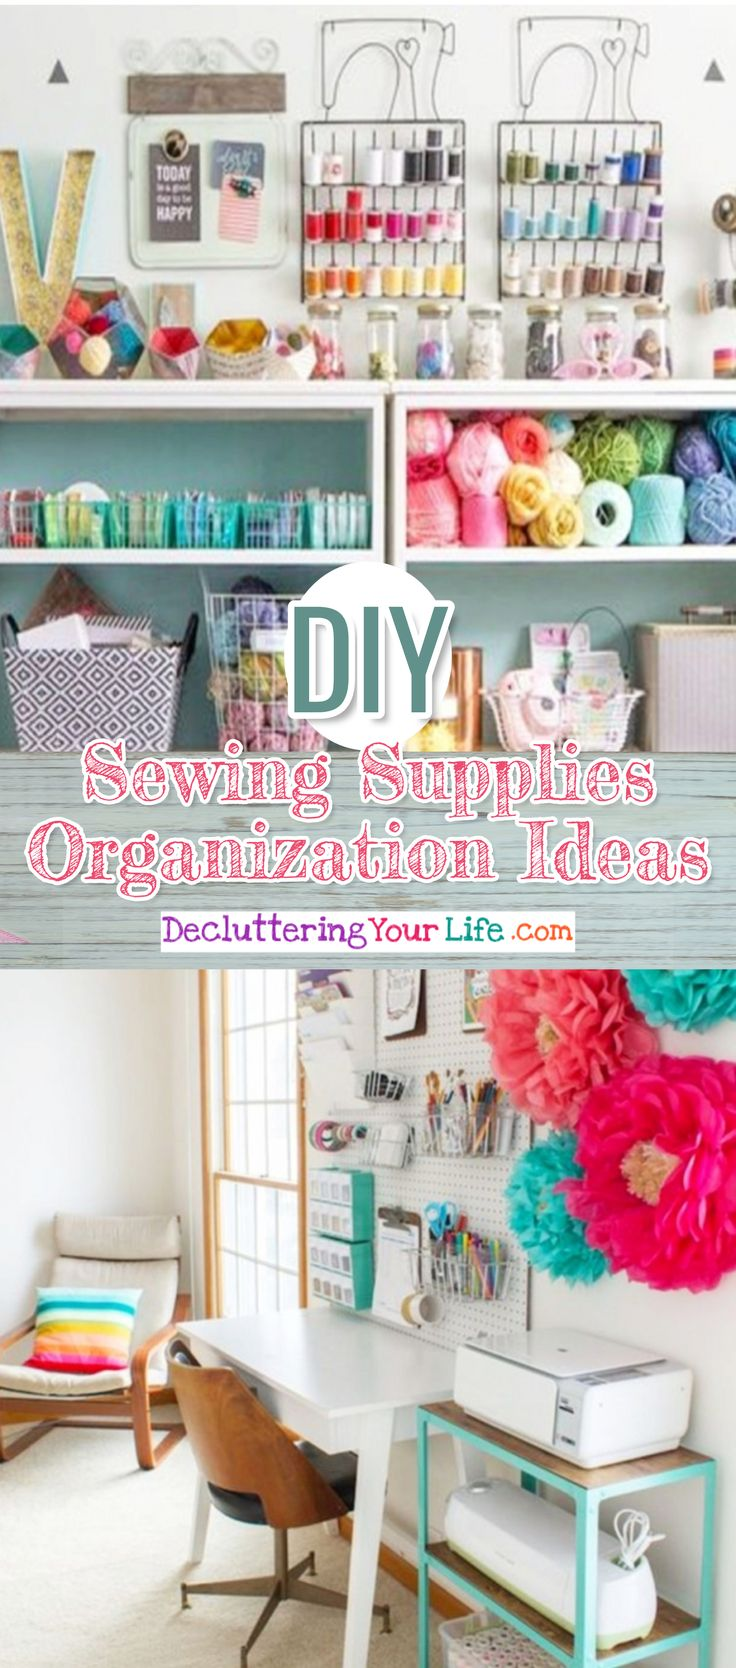 DIY Sewing Supplies Organization Ideas and easy ideas for organizing your craft room